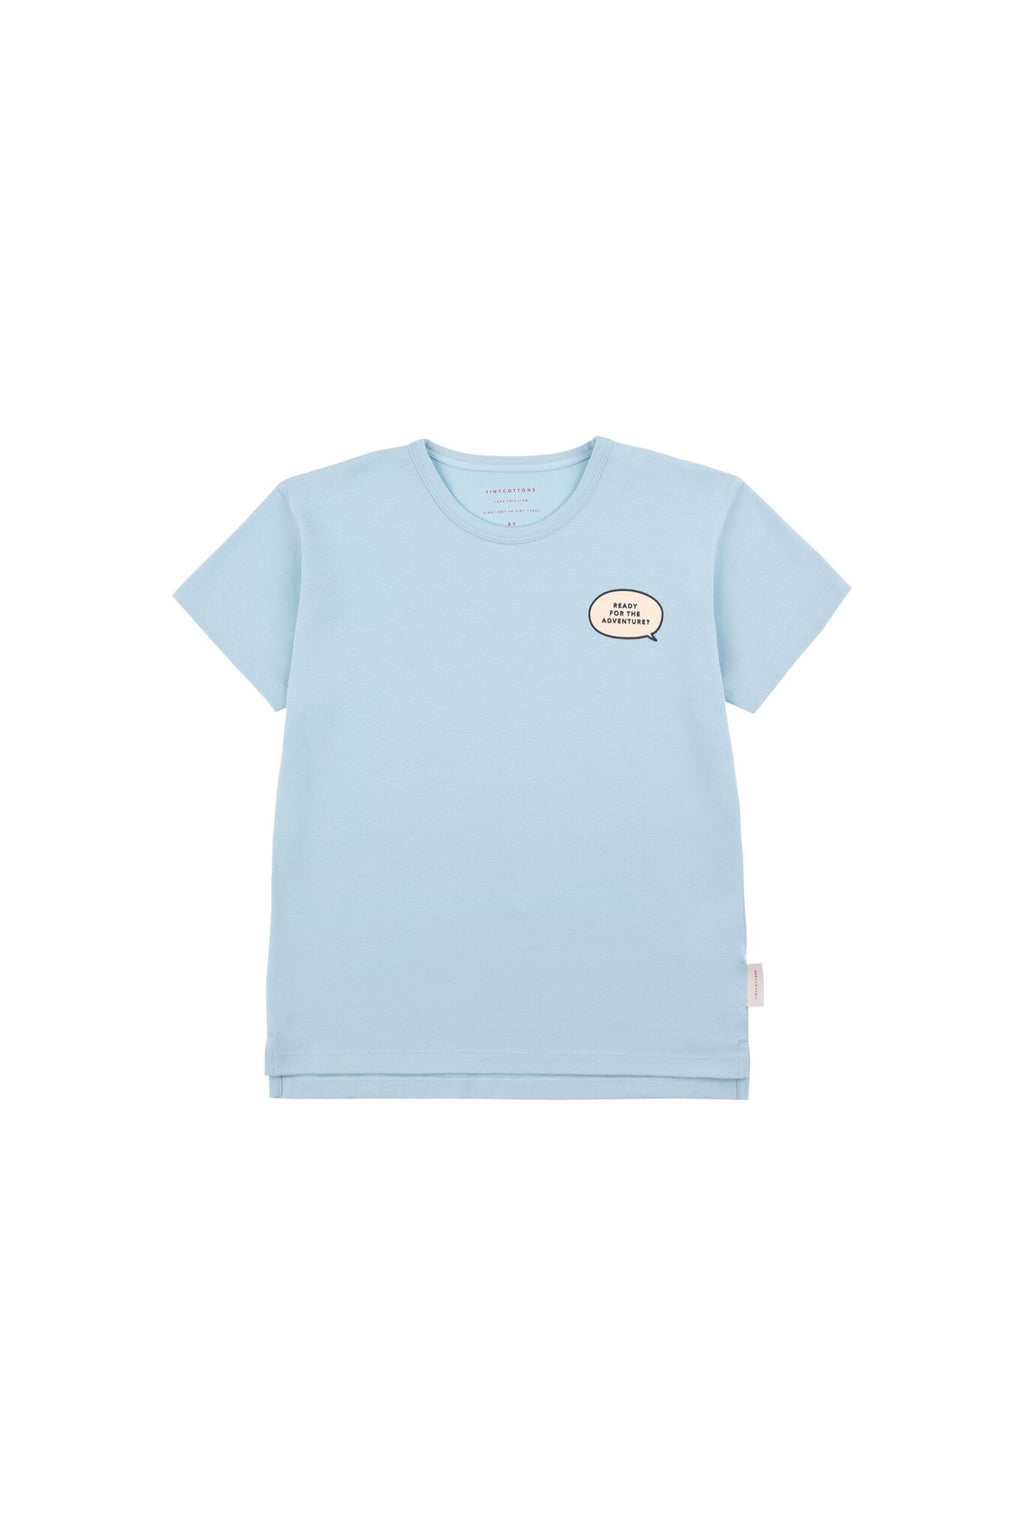 Designer Kids Fashion at Bloom Moda Online Children's Boutique - Tinycottons Adventure Tee,  Shirt